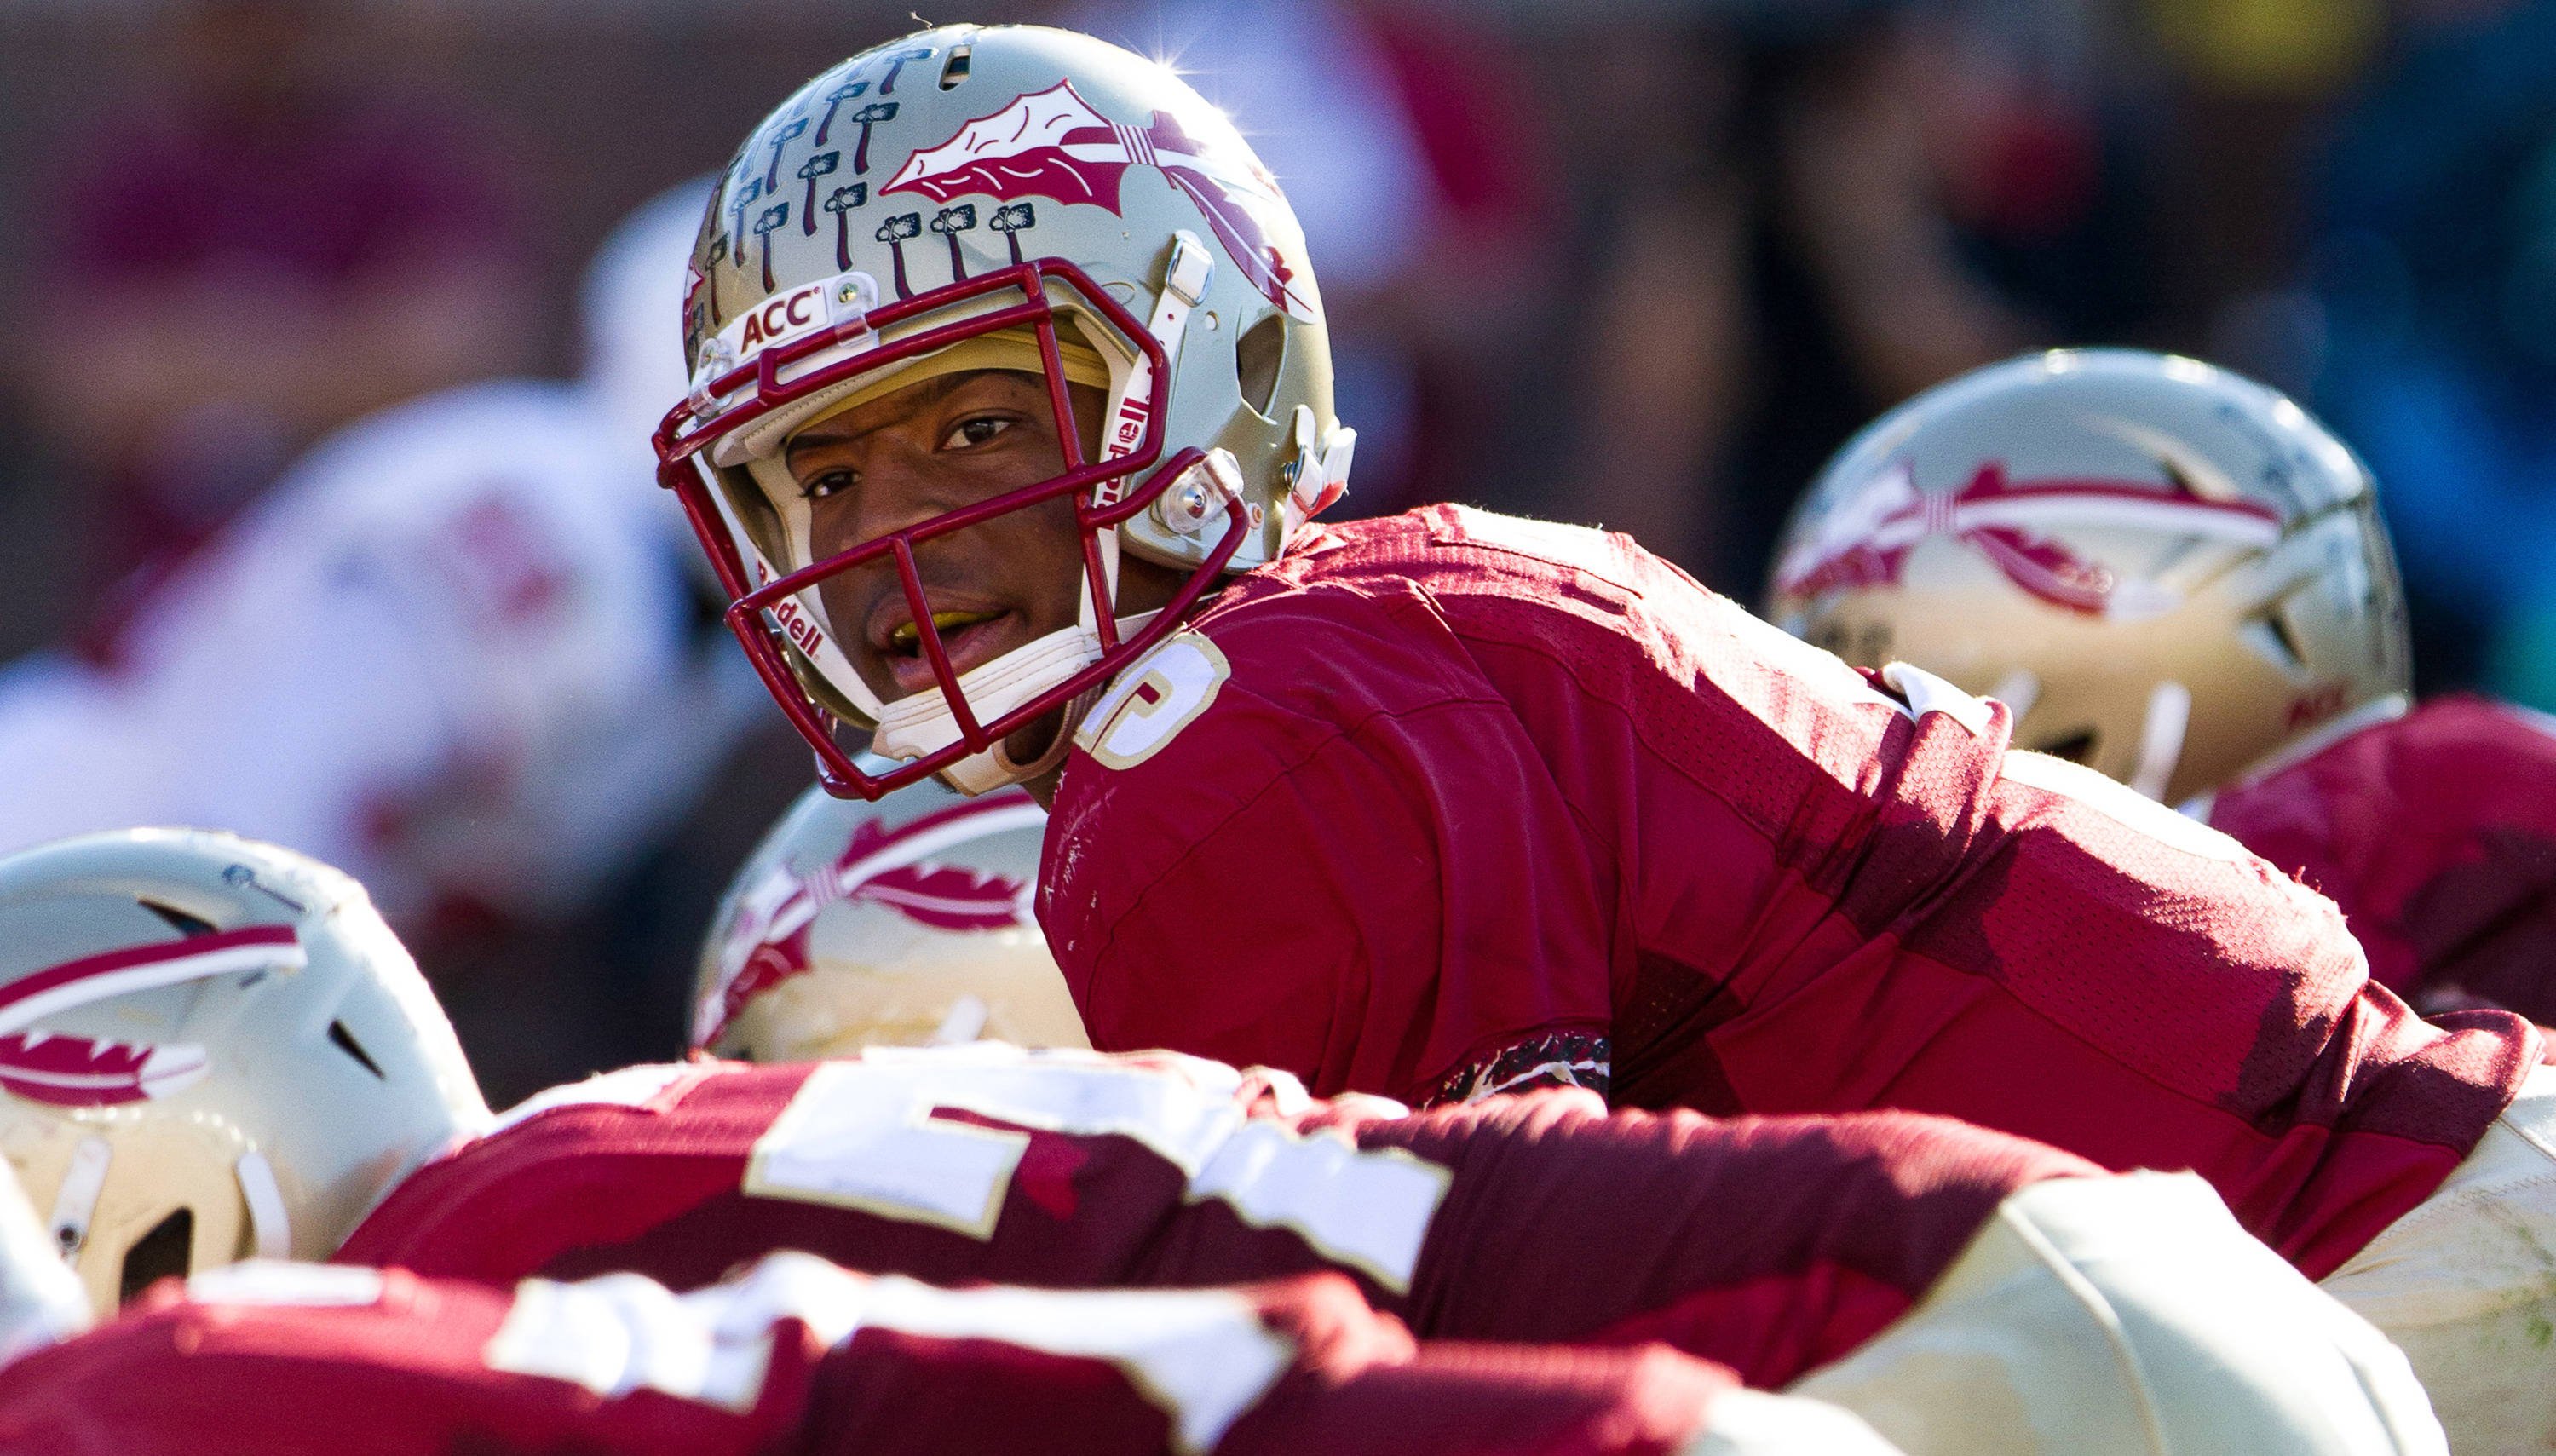 Jameis Winston (5) looks down his line during FSU Football's 49-17 win over NC State on Saturday, October 26, 2013 in Tallahassee, Fla. Photo by Michael Schwarz.